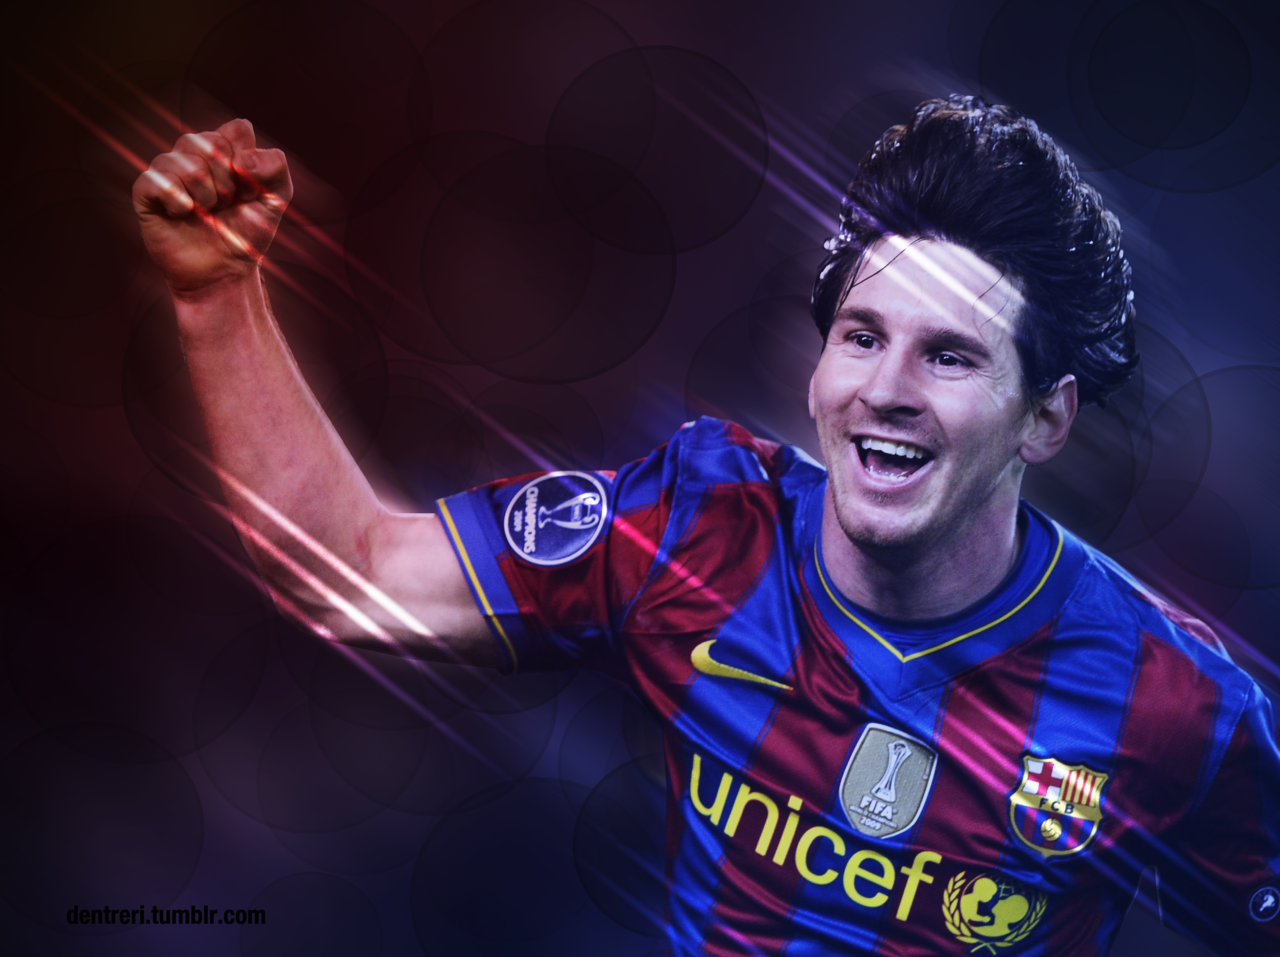 Random picture of Messi I made. Played around with the gradient tool quite a bit.